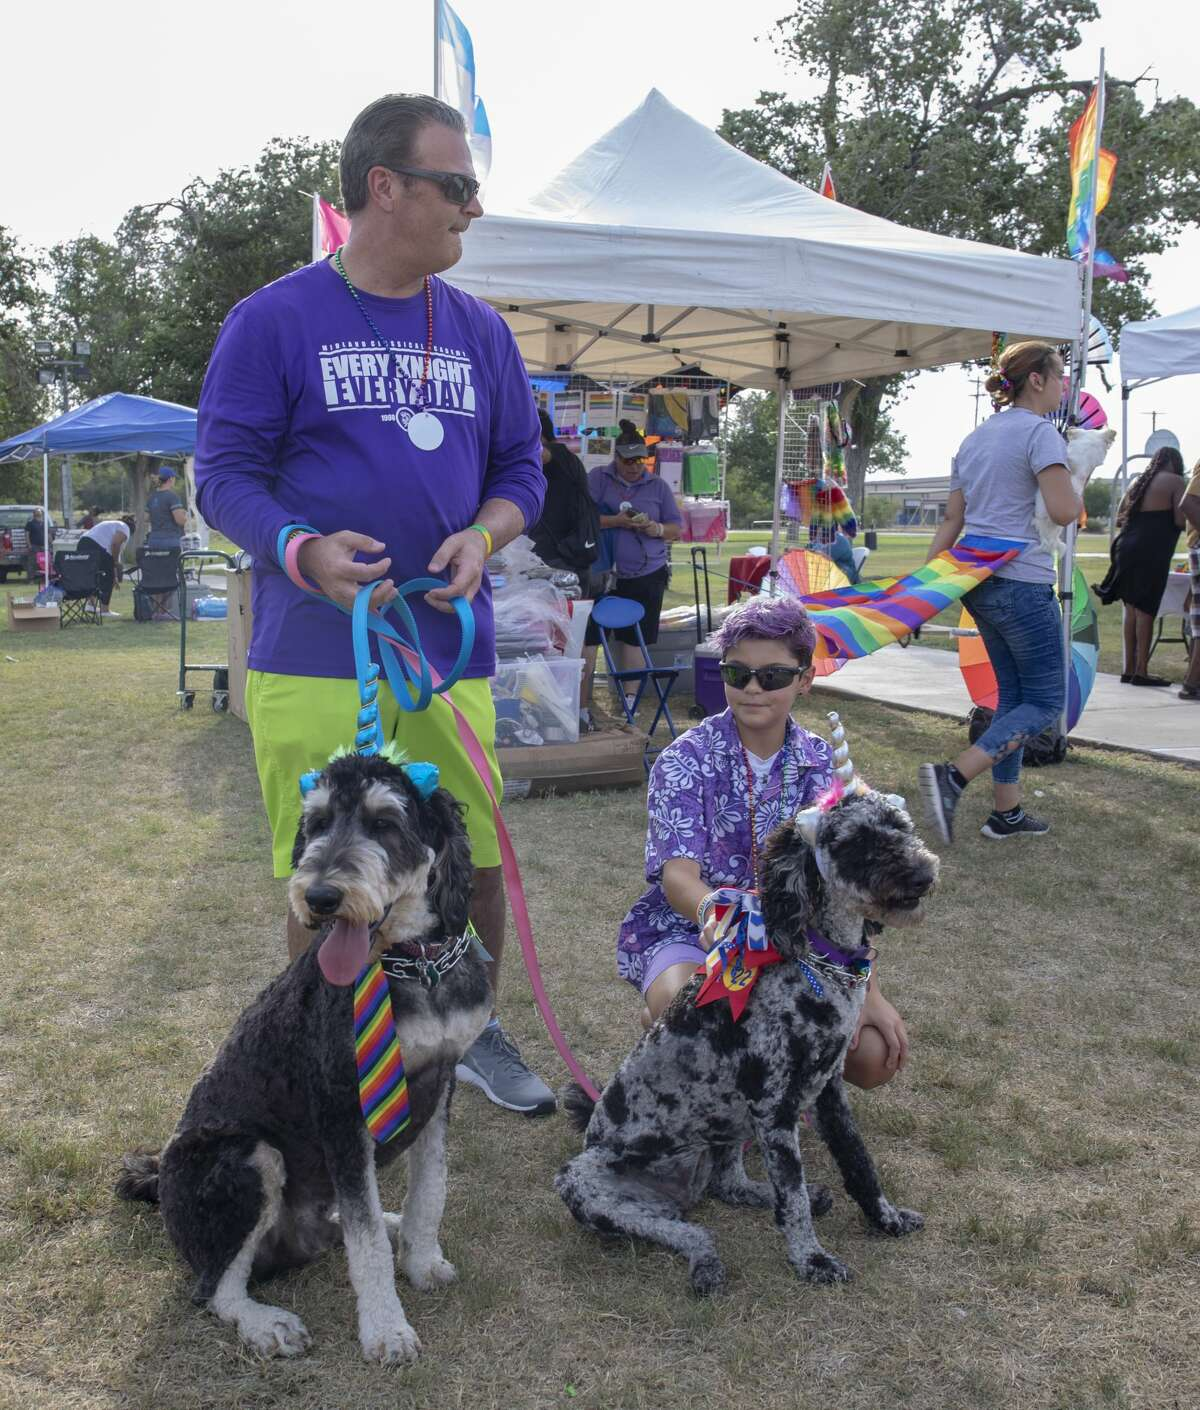 Paul and Harper Colwell with their dogs Baxter and Scout attend the first Basin Pride was Friday, Aug. 2, 2019 at McKinney Park in Odessa.